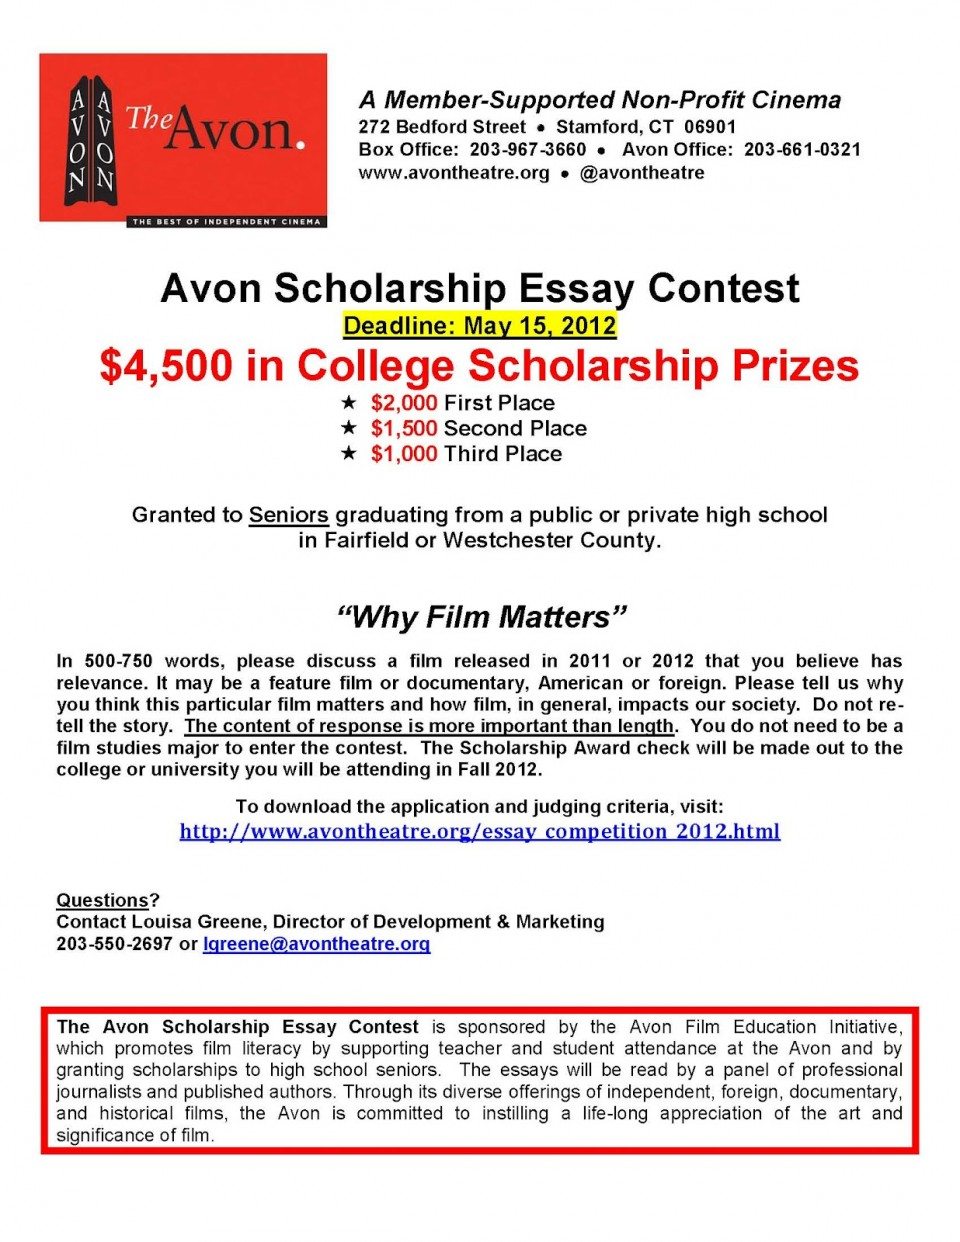 002 No Essay Collegeip Prowler Freeips For High School Seniors Avonscholarshipessaycontest2012 In Texas California Class Of Short Example Wondrous Scholarship College Scholarships 2018 2019 Free 960